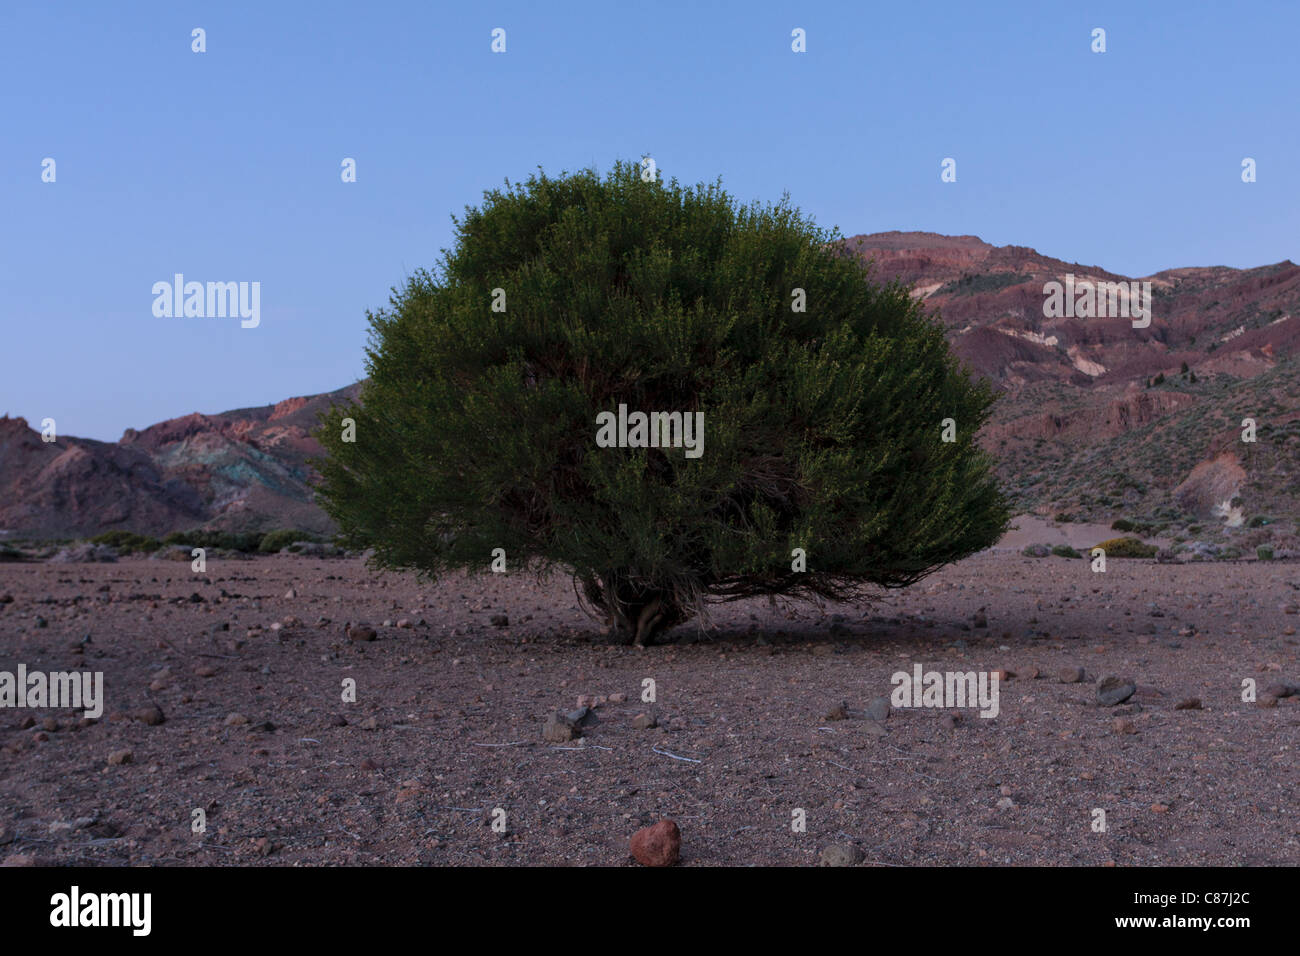 Retamar shrub on the Llano de Ucanca in the Las Canadas del Teide national park at twilight. Tenerife, Canary Islands, - Stock Image